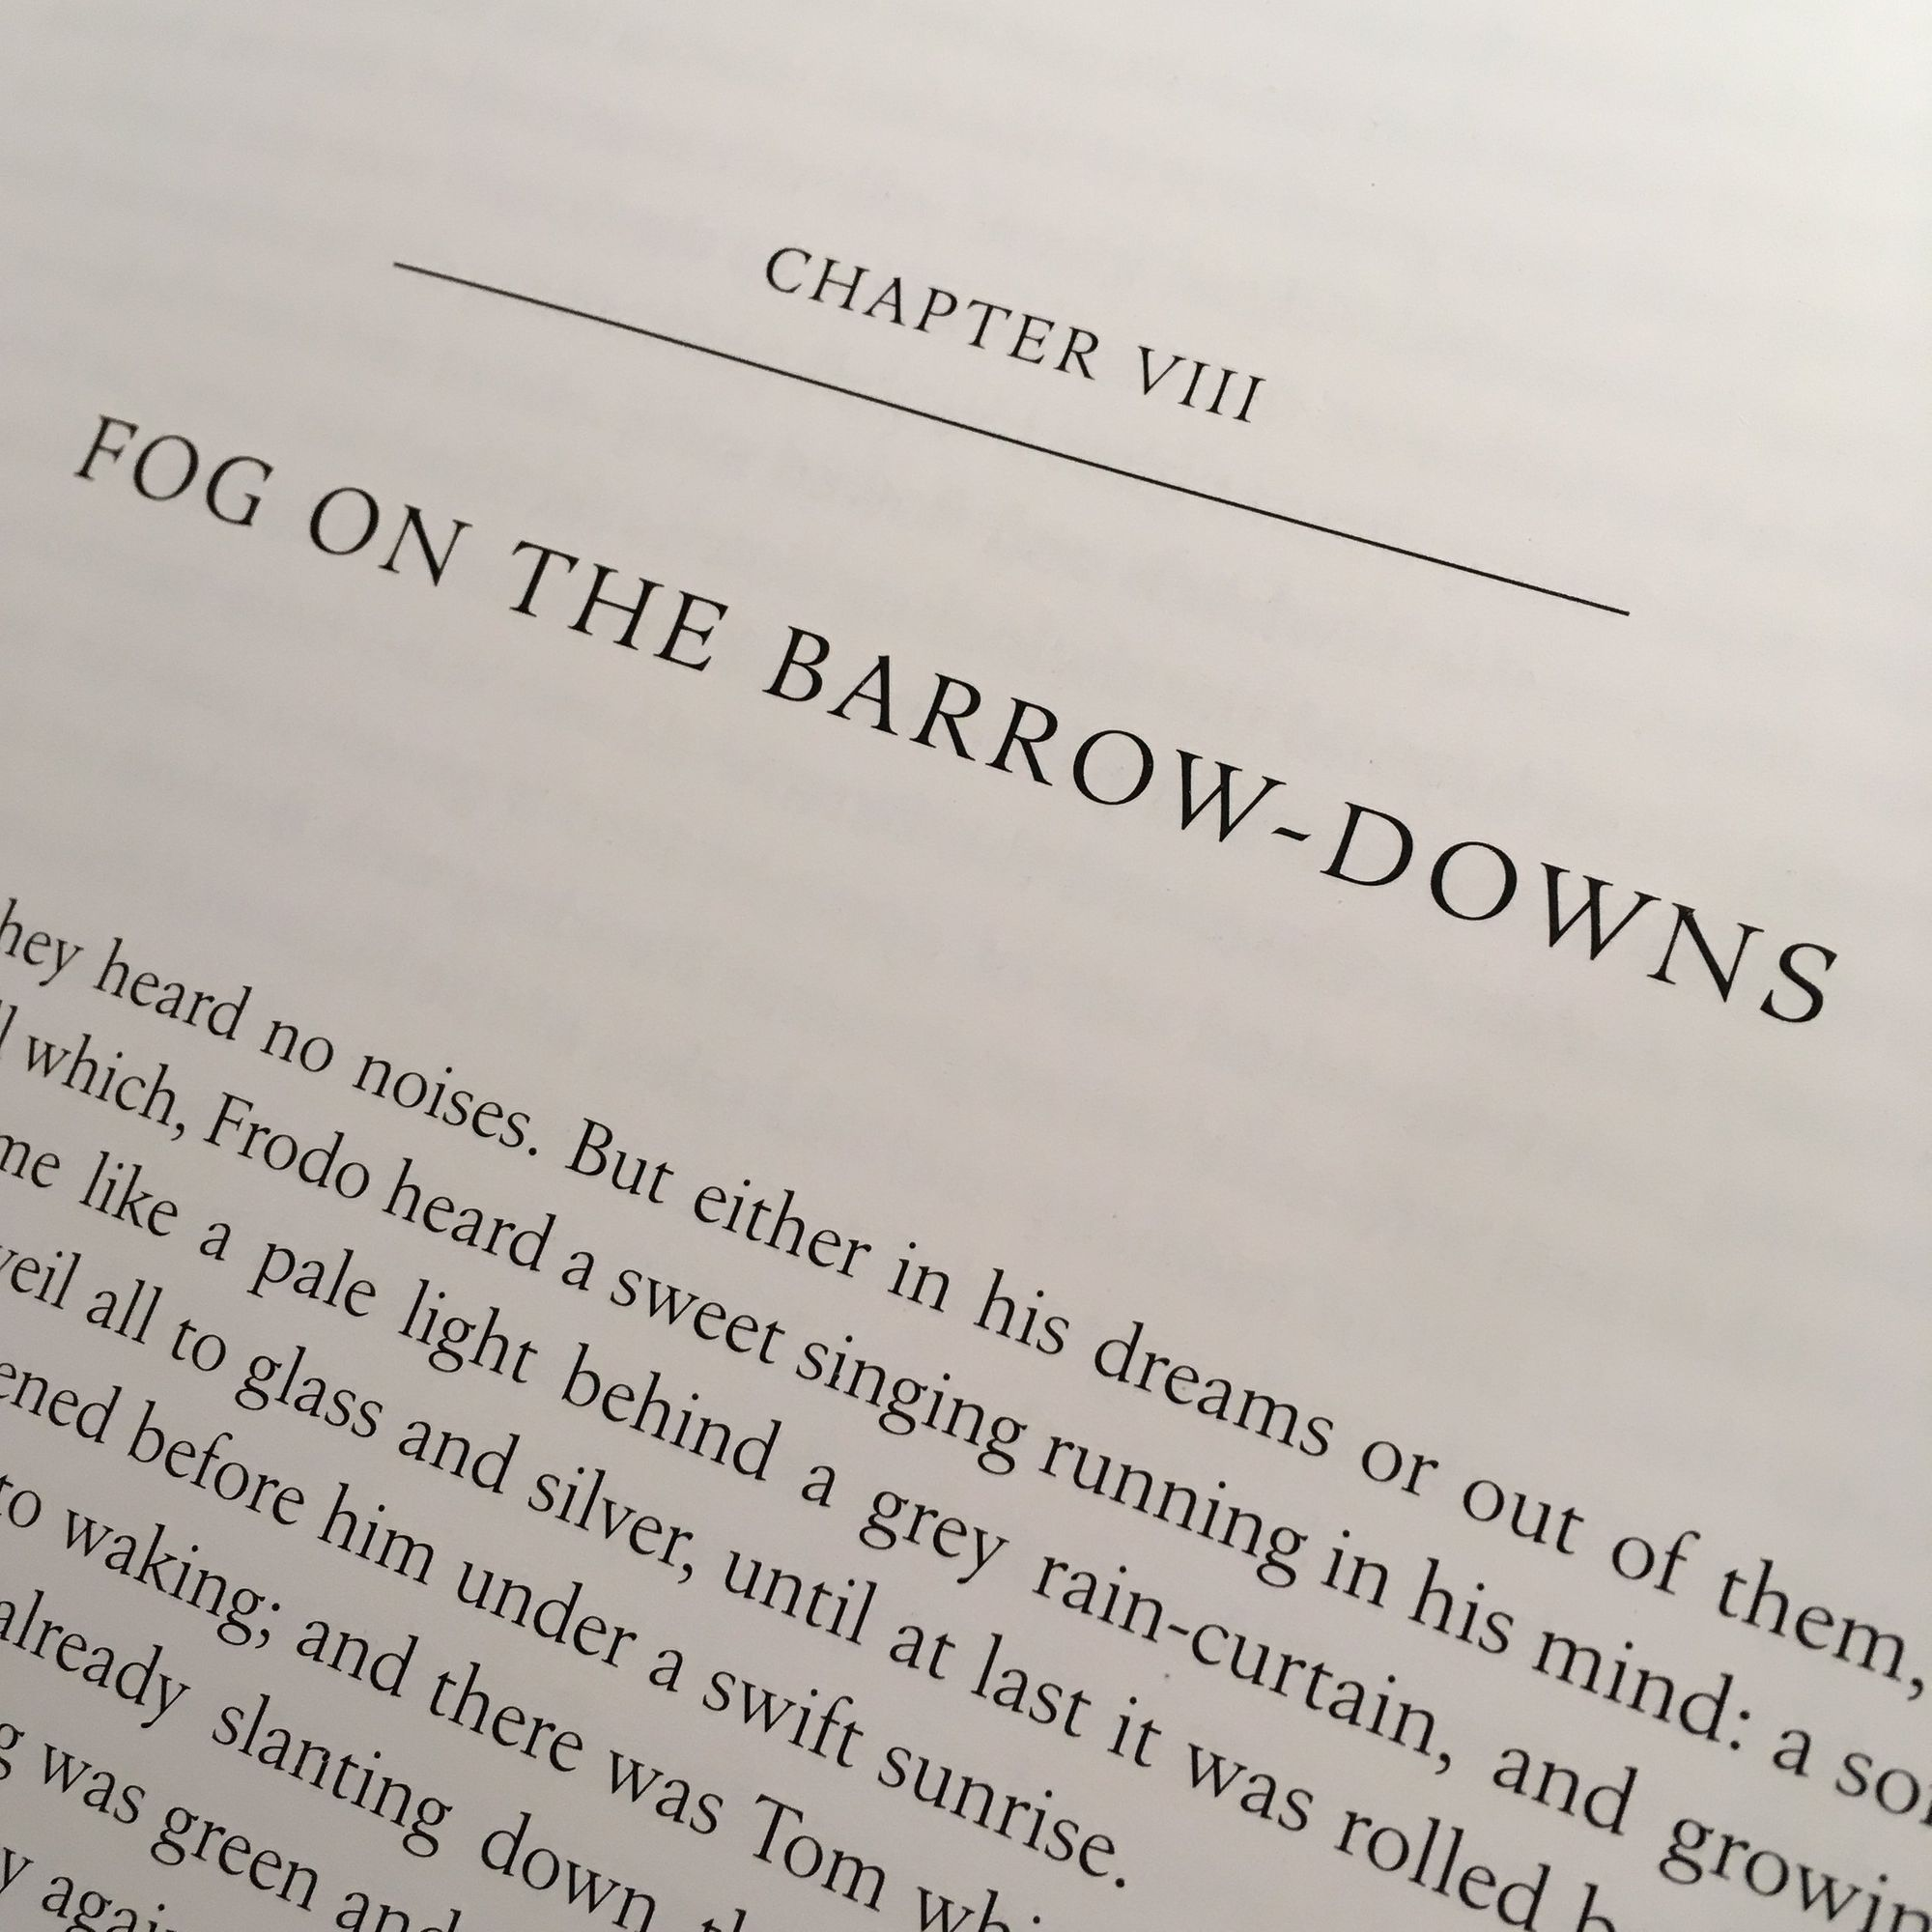 The Fellowship of The Ring: Fog on the Barrow-downs